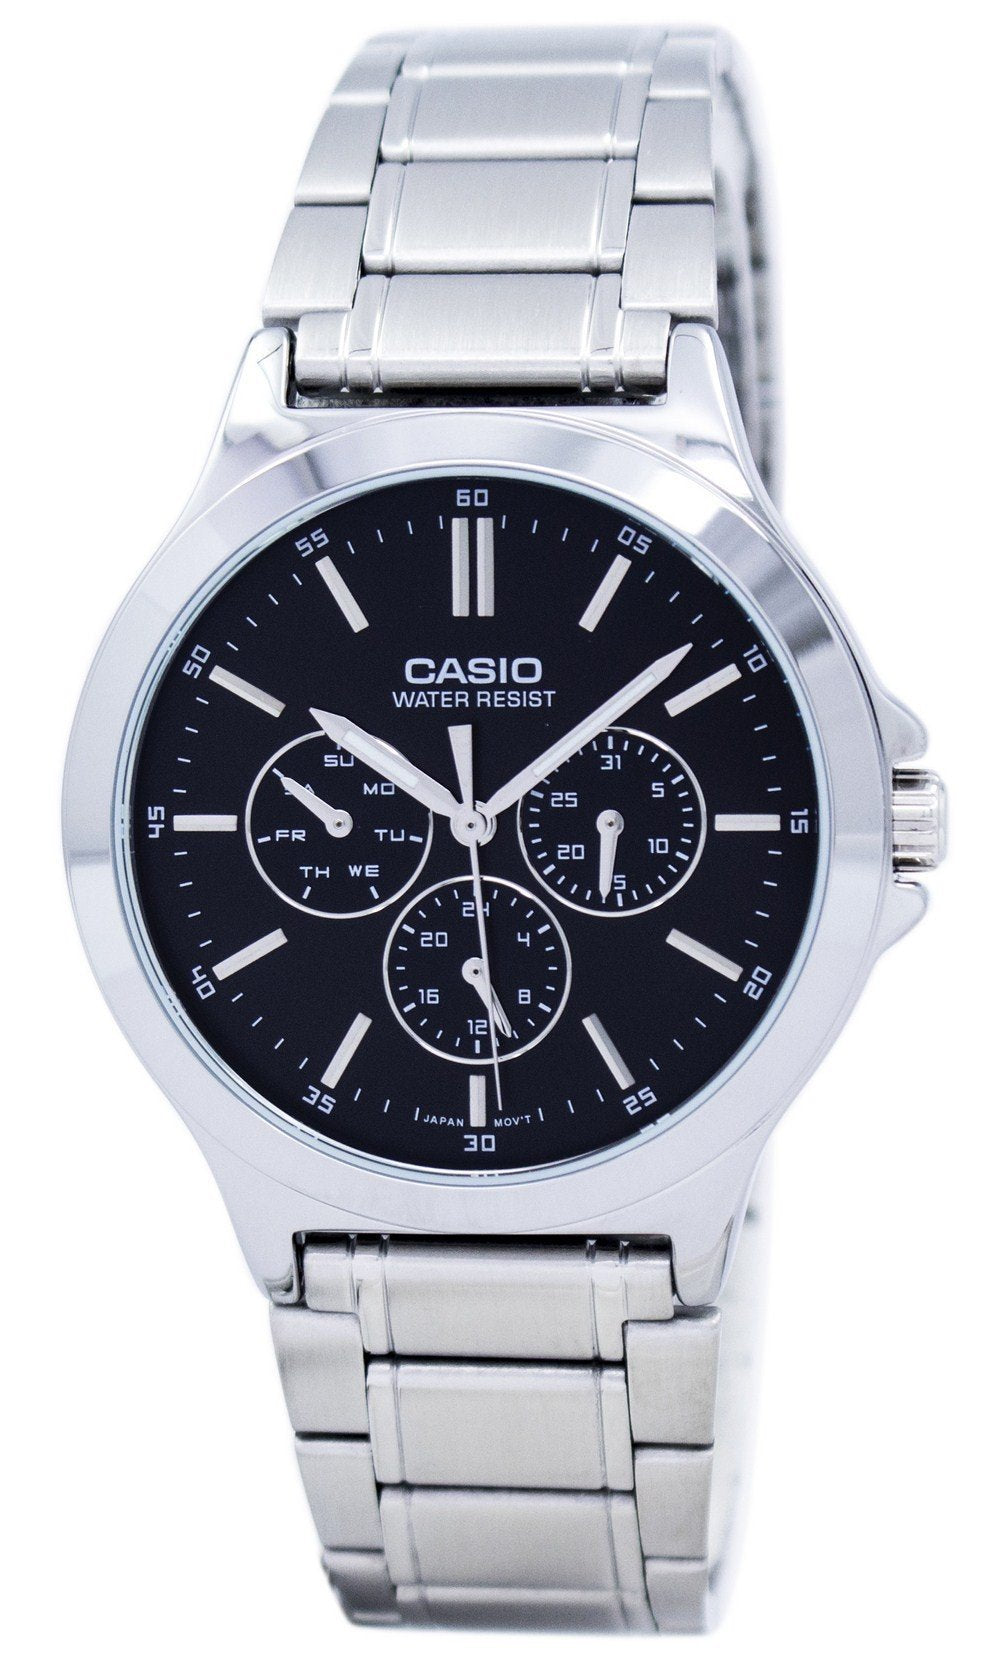 Casio Analog Quartz MTP-V300D-1AUDF Men's Watch